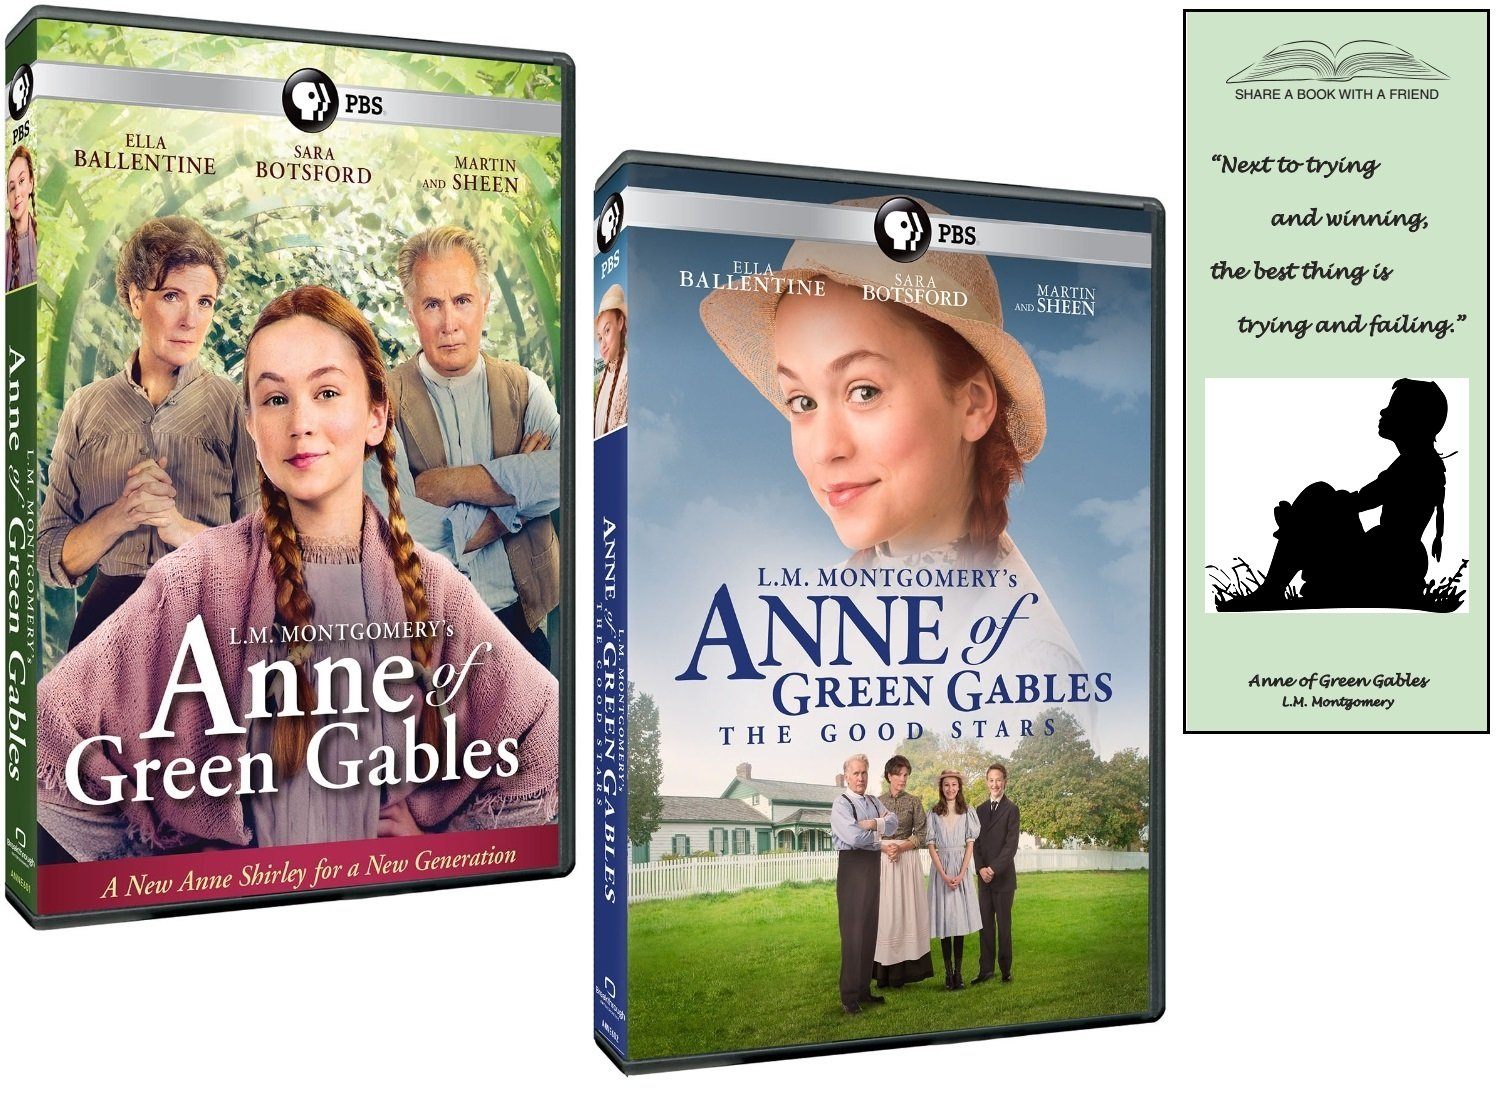 L.M. Montgomery's Anne of Green Gables + The Good Stars DVD Gift Set with Bonus Bookmark